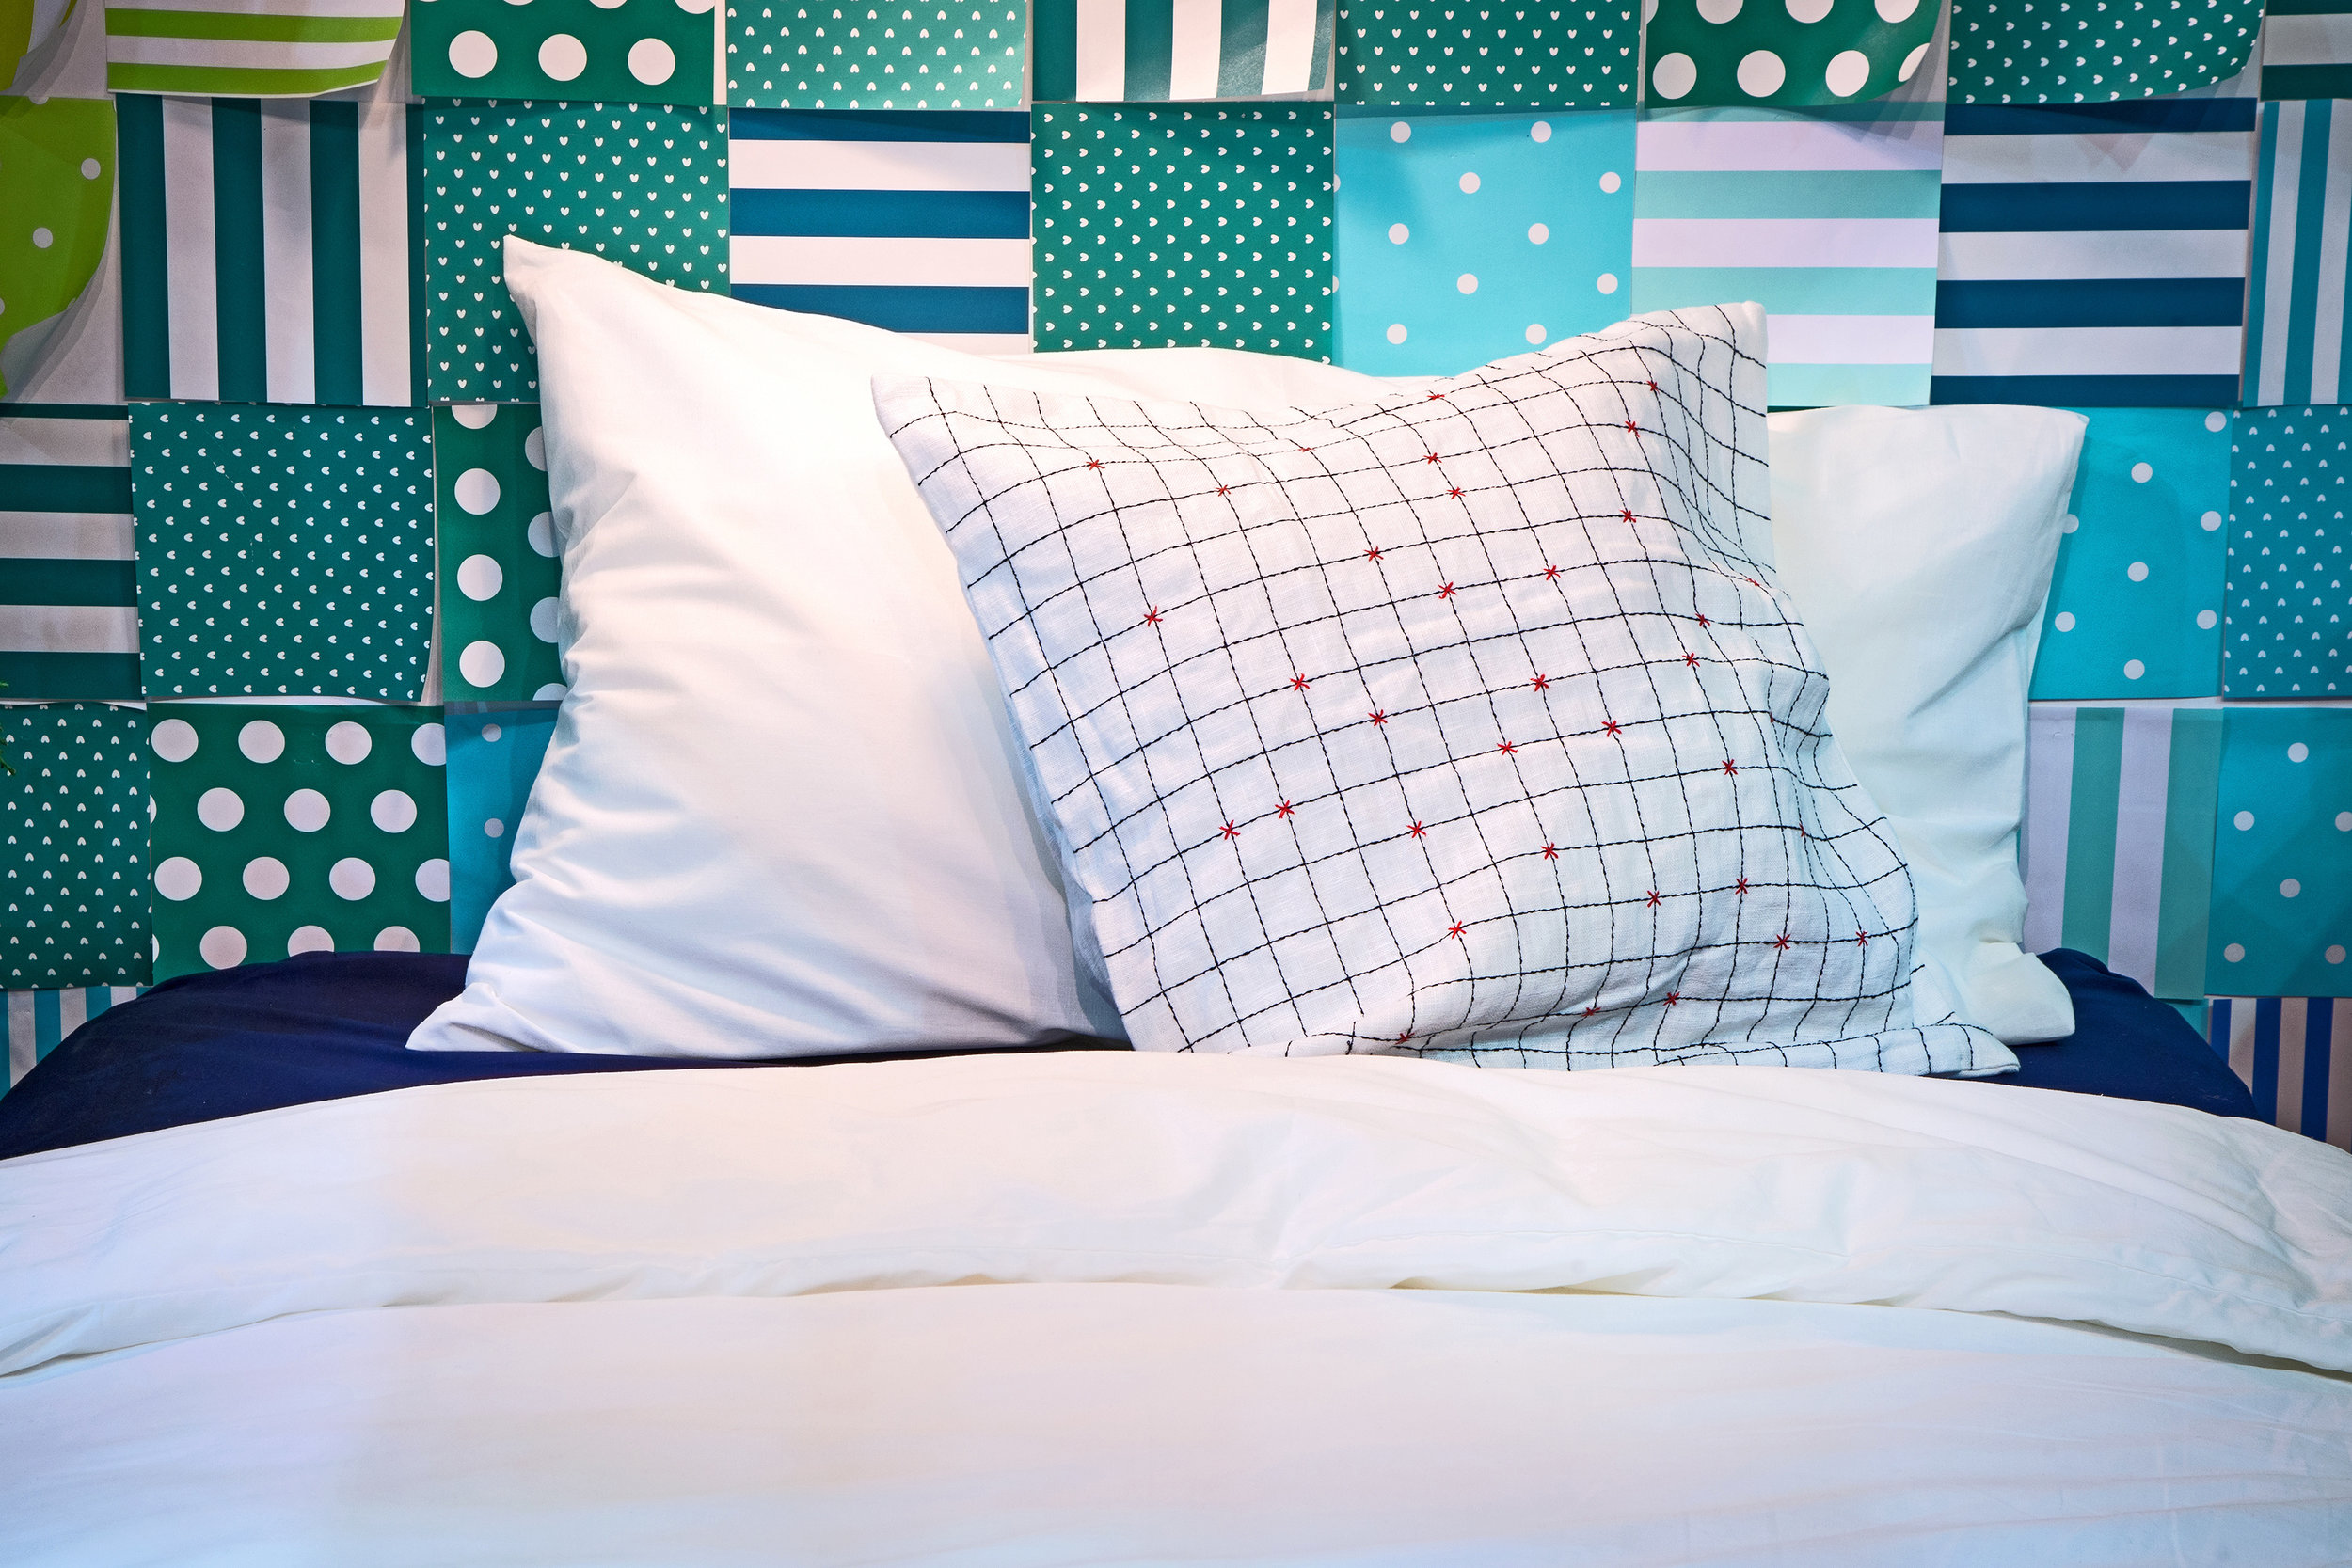 Colorful Custom Designed Headboard  Polka dot and striped fabrics of navy, teal and aquamarine create colorful patchwork headboard for coastal bedroom  Design Thought:  Purchase a used or inexpensive headboard, preferably a rectangle.  Mix and match approximately six fabrics in three colors each of polka dots and stripes.  Design a pattern similar to patch quilt blocks and have headboard upholstered.  Remember, the plusher the batting underneath the fabric, the more cushioned the headboard.